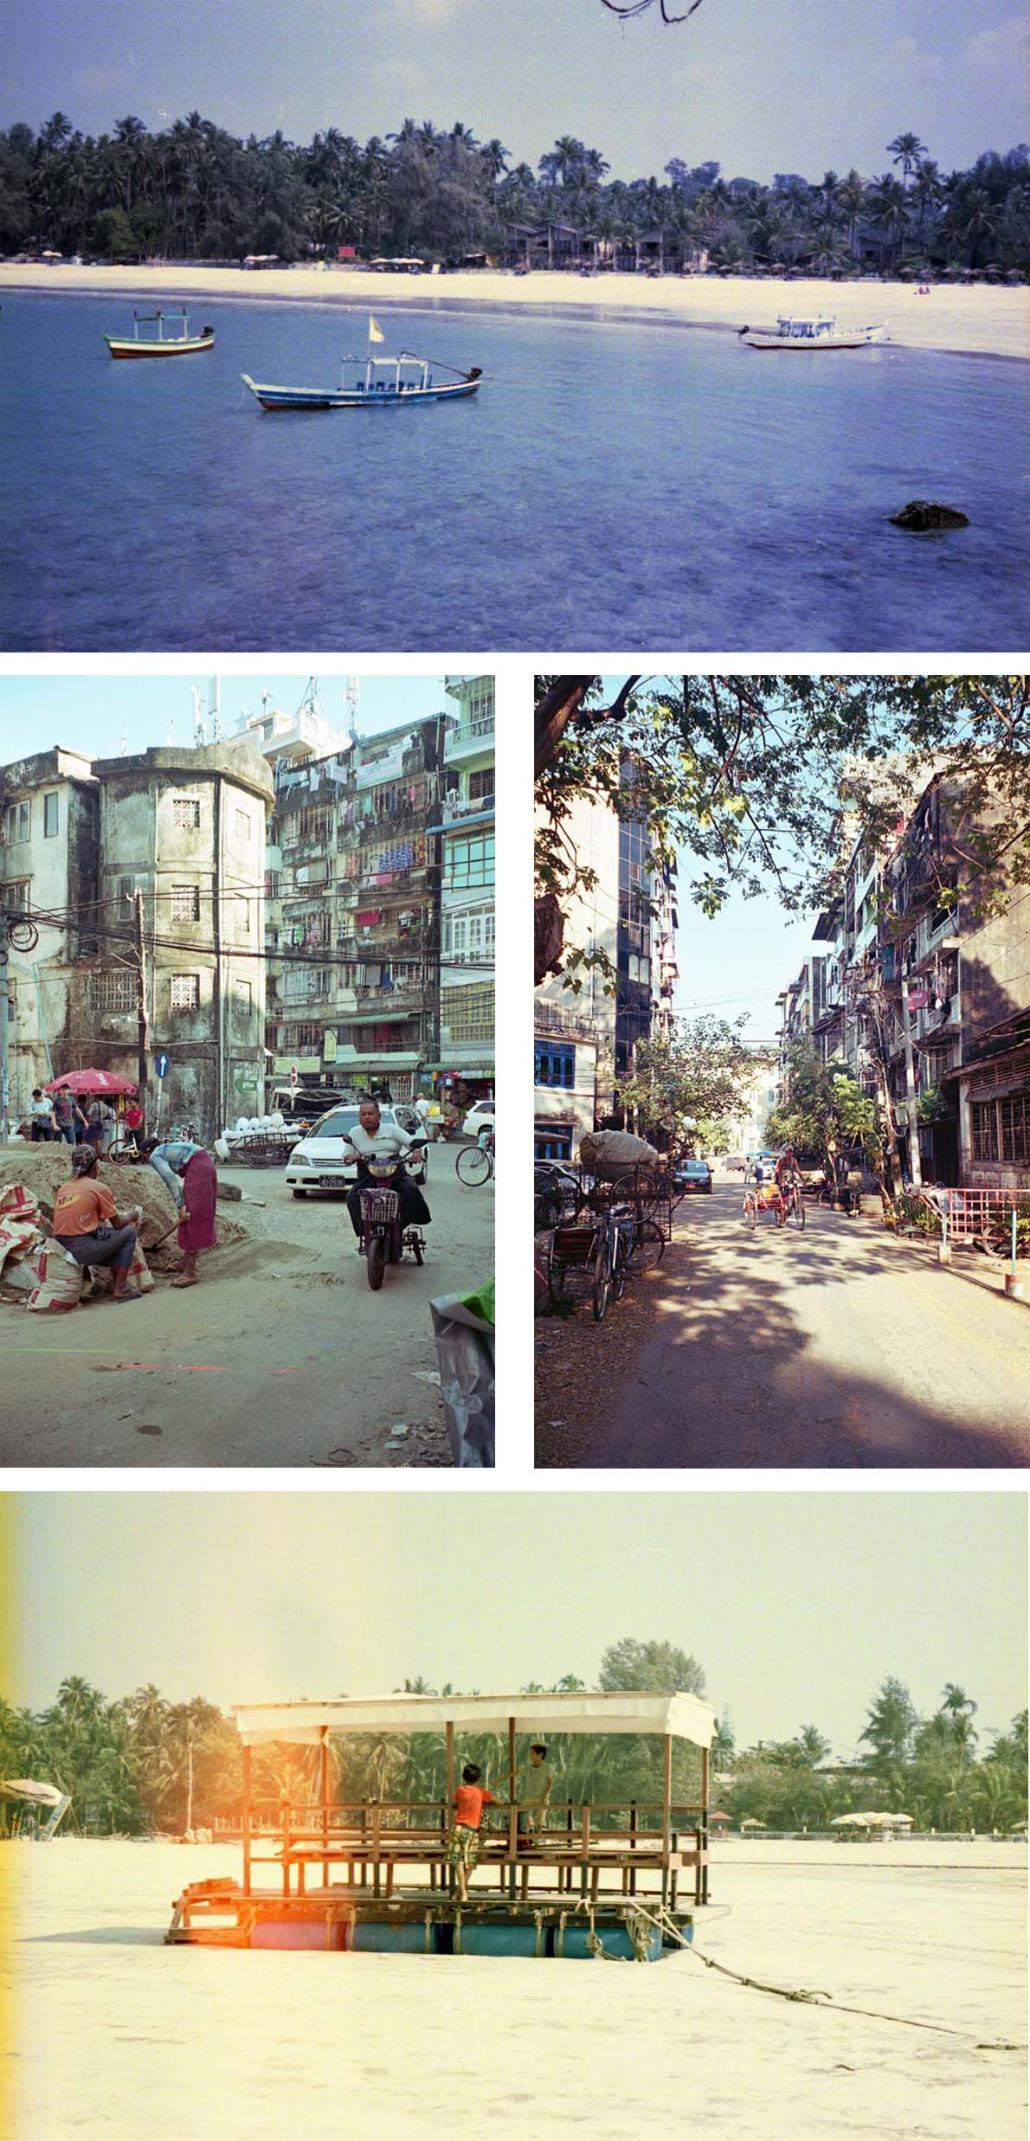 Analogue photographs taken in Myanmar by Tanvi Riise